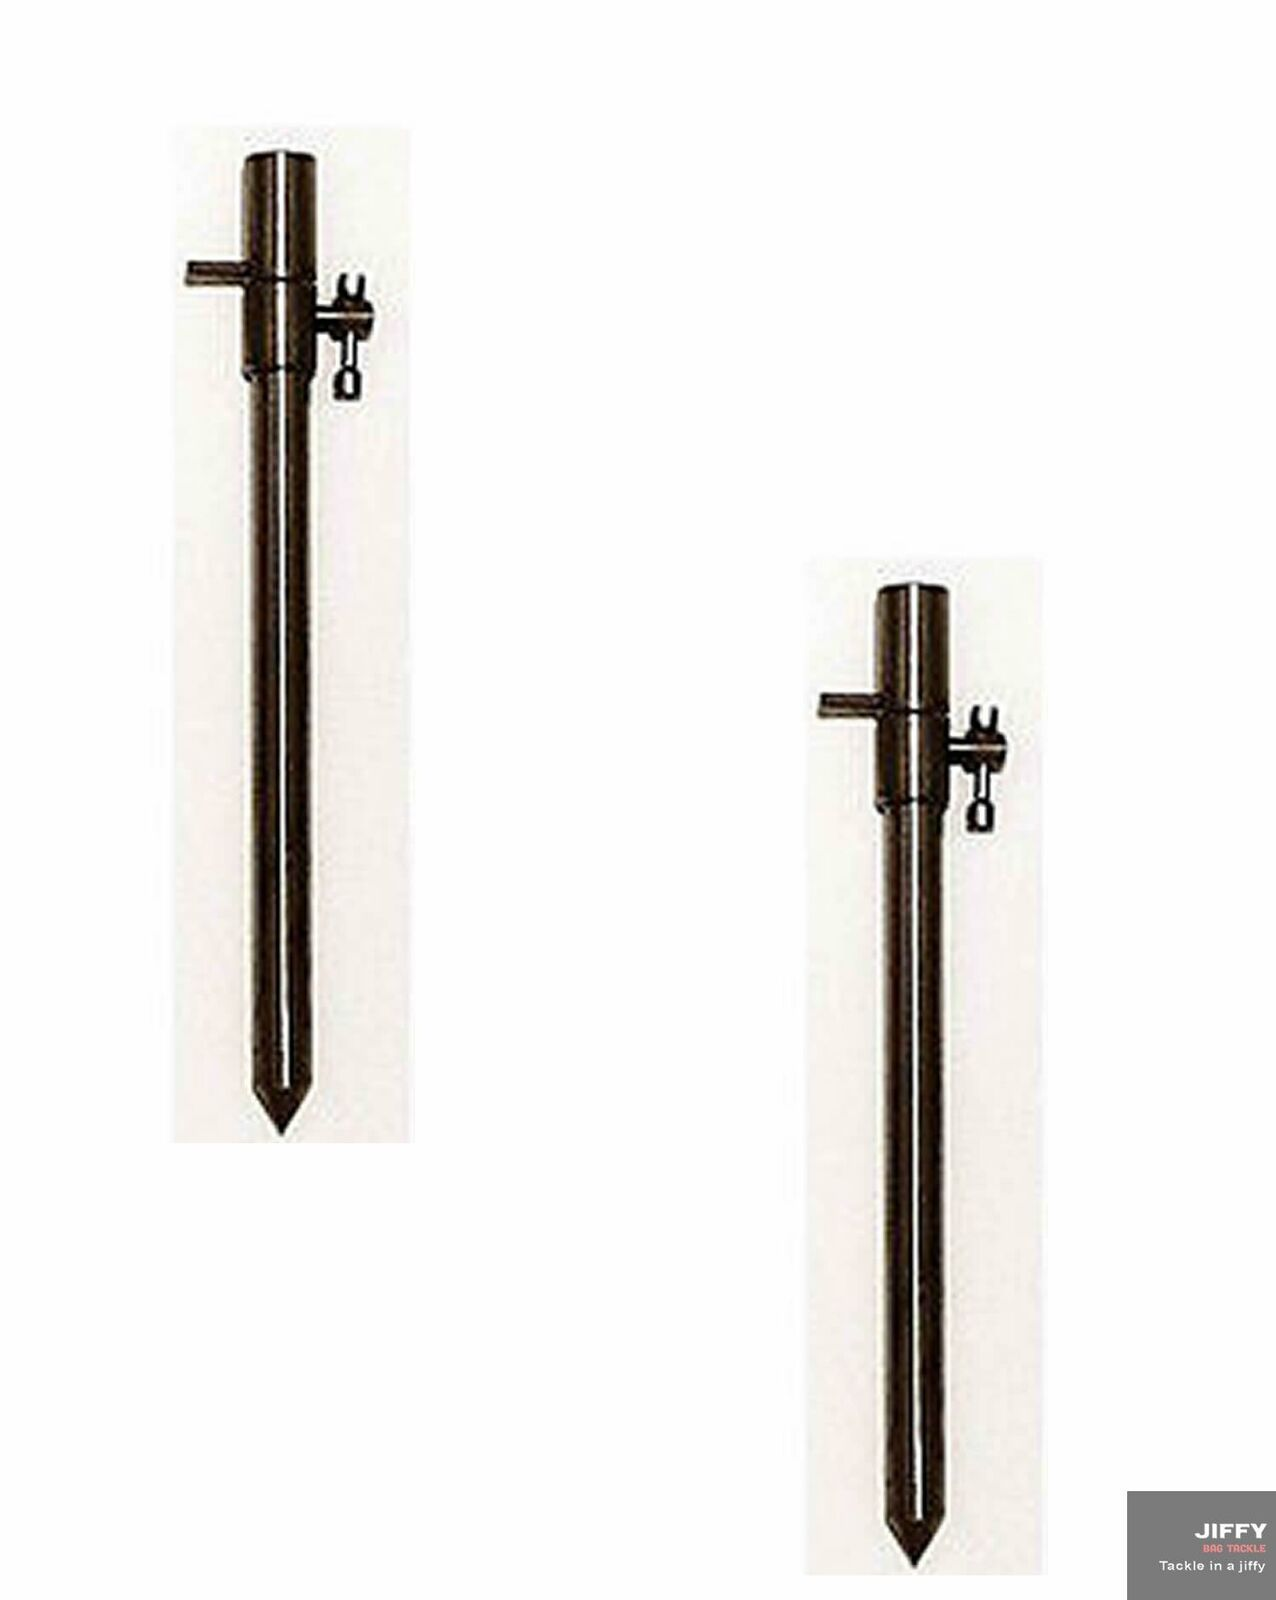 SPECIAL OFFER PAIR OF 50cm-90cm STAINLESS STEEL BANK STICKS WITH SCREW ENDS